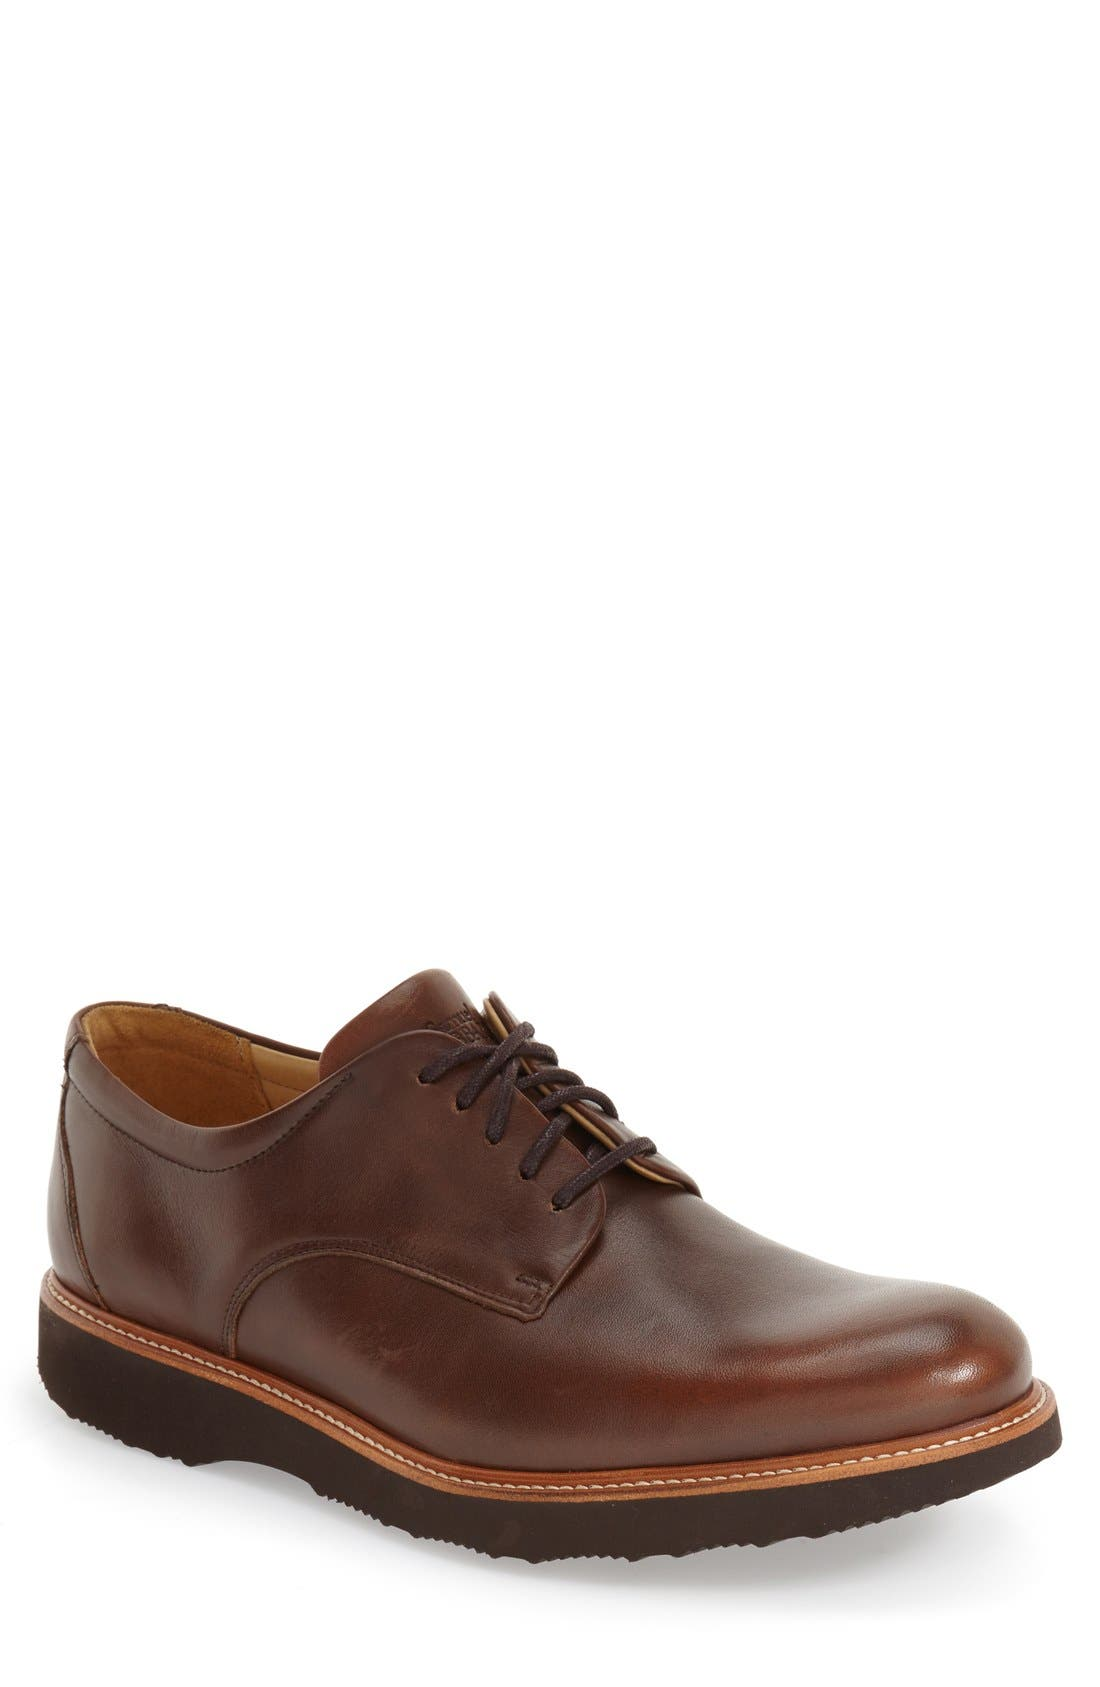 'Founder' Plain Toe Derby,                         Main,                         color, CHESTNUT LEATHER